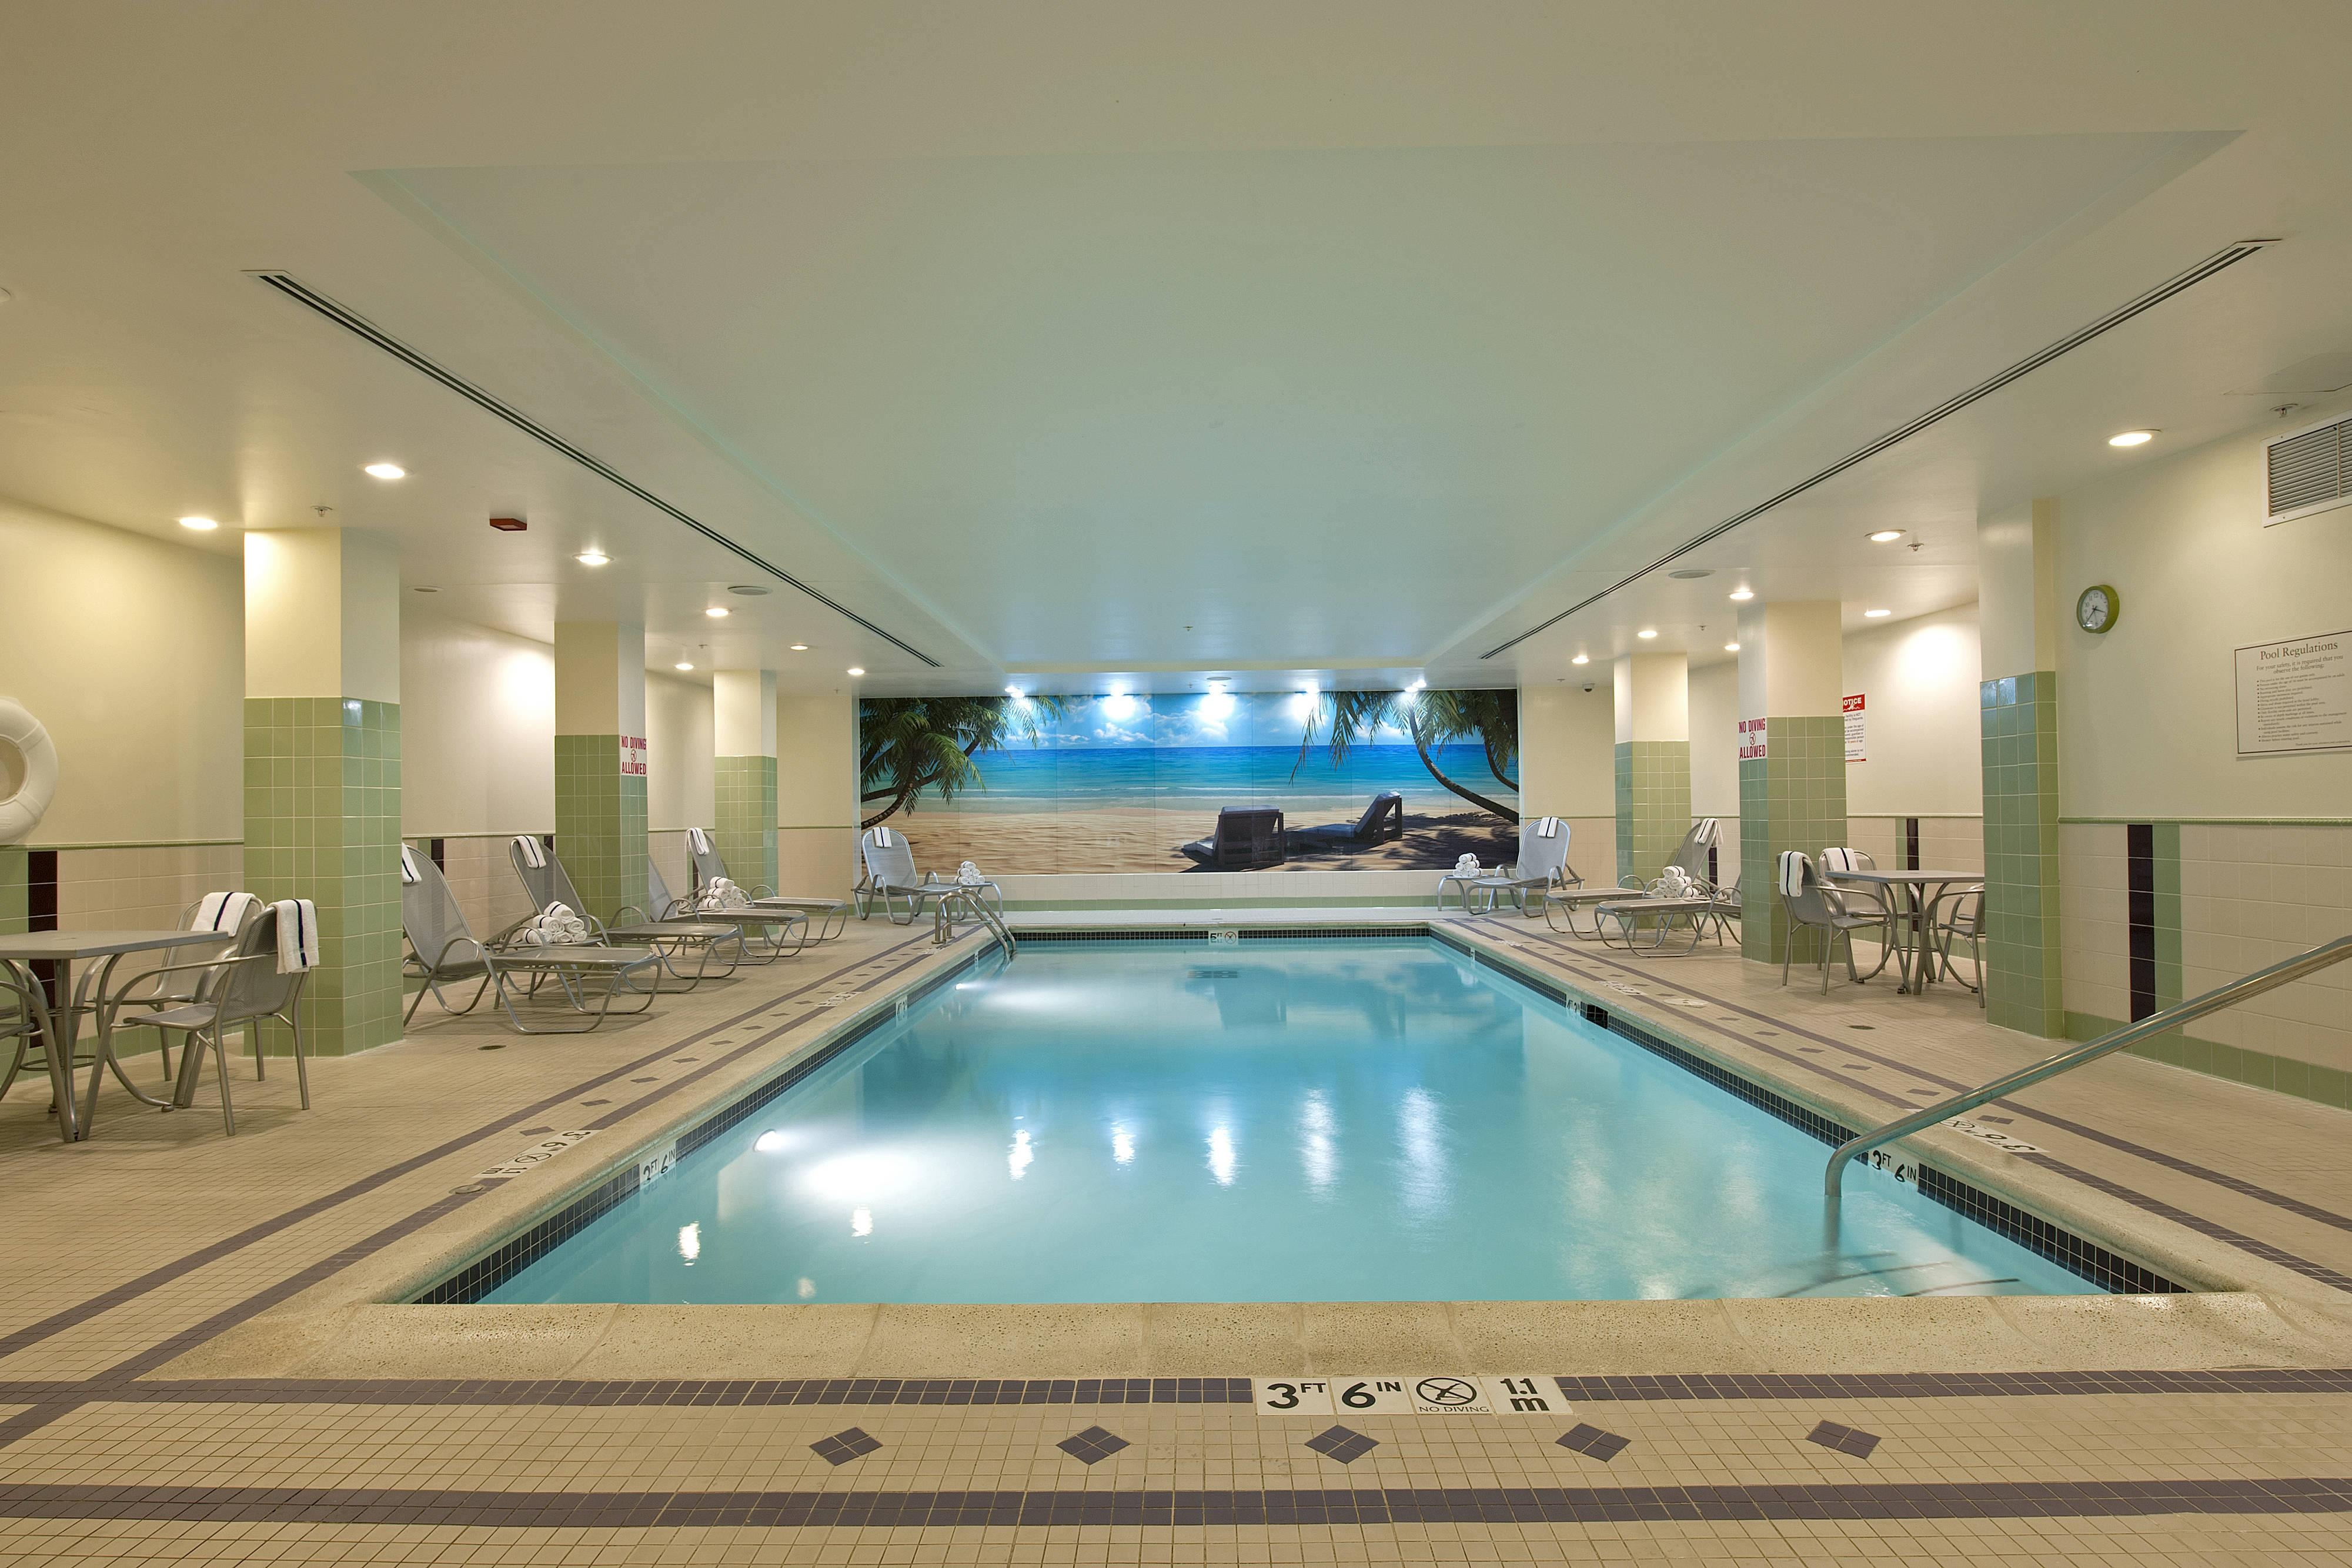 Piscina cubierta del Springhill Suites Chicago O'Hare